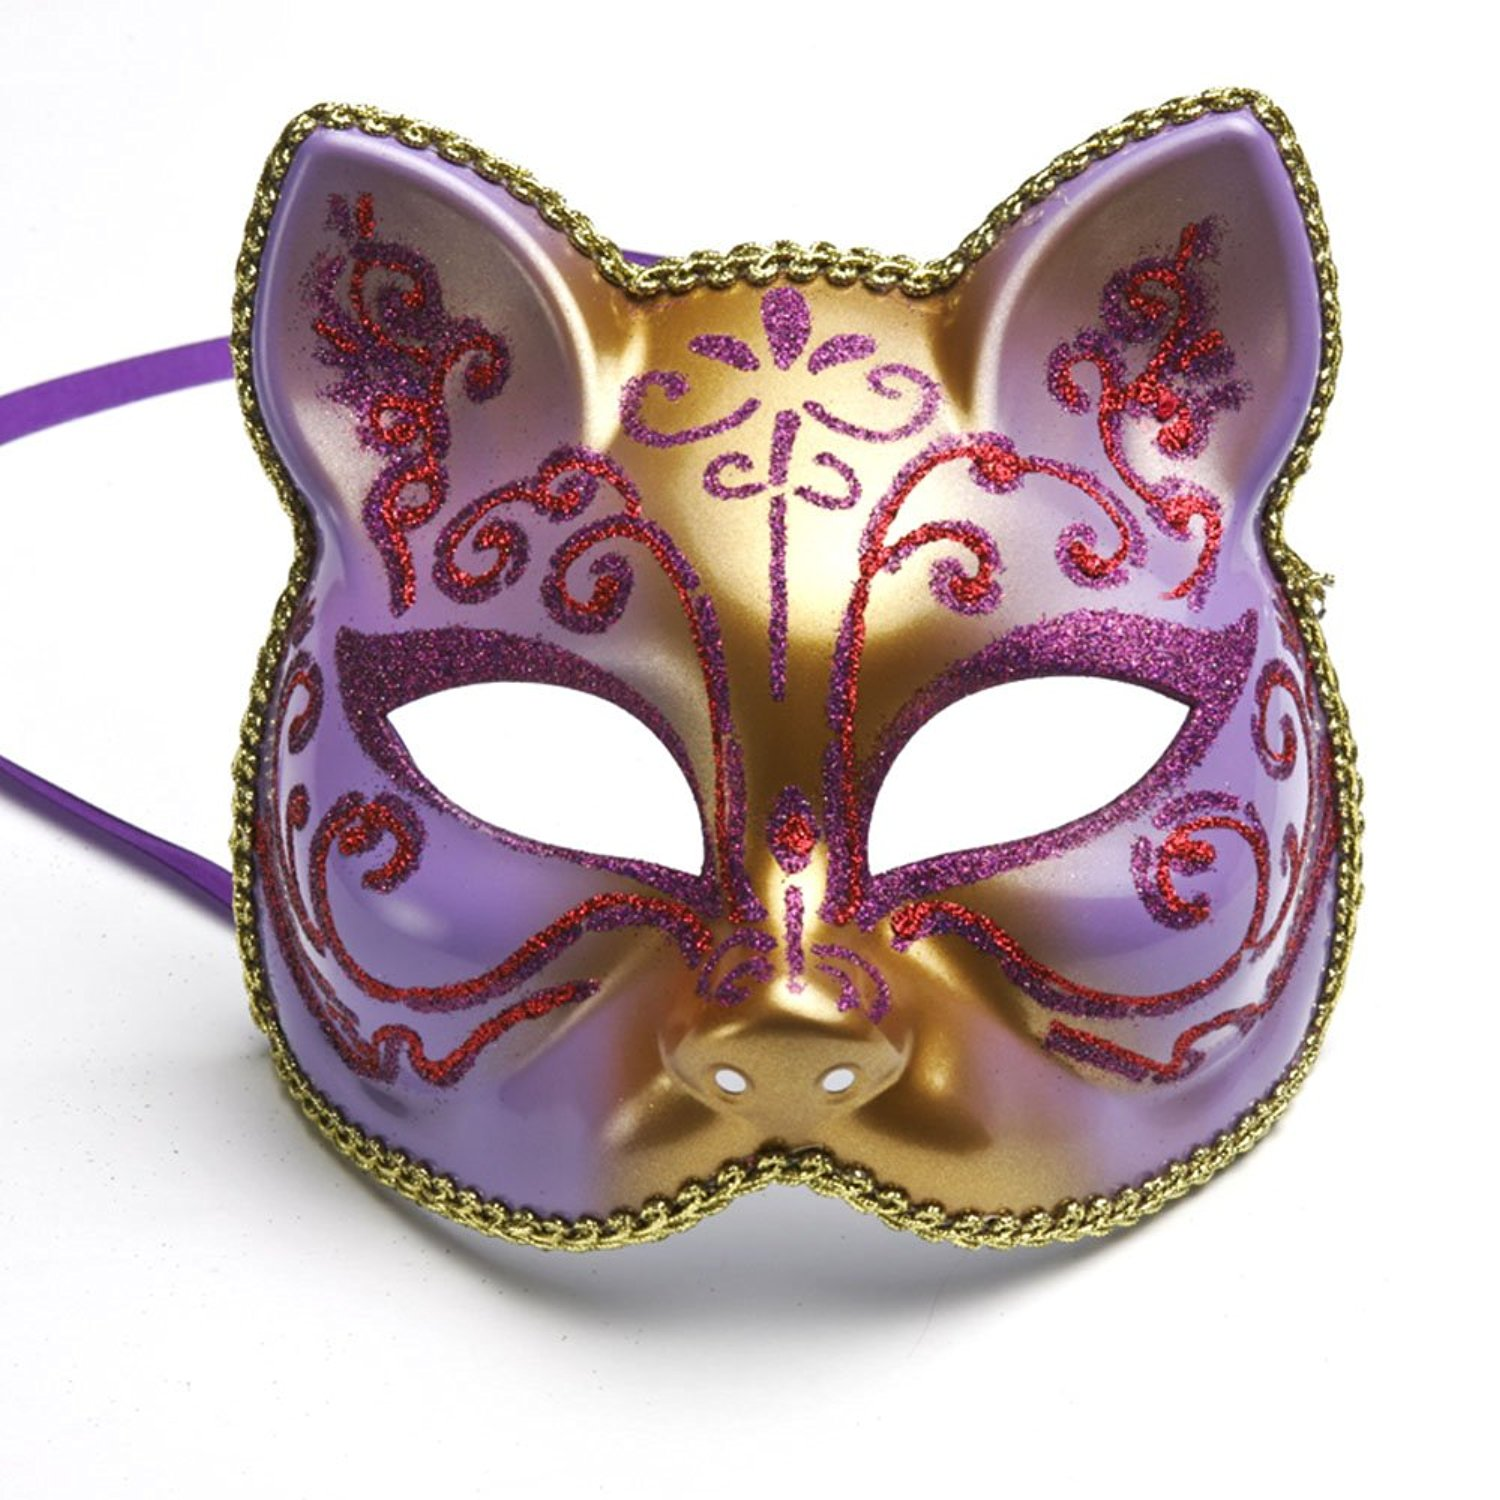 CIShop Painting Cat Mask for Children and Women Masquerade Mask Halloween Mask  sc 1 st  Alibaba & Buy CIShop Painting Cat Mask for Children and Women Masquerade Mask ...